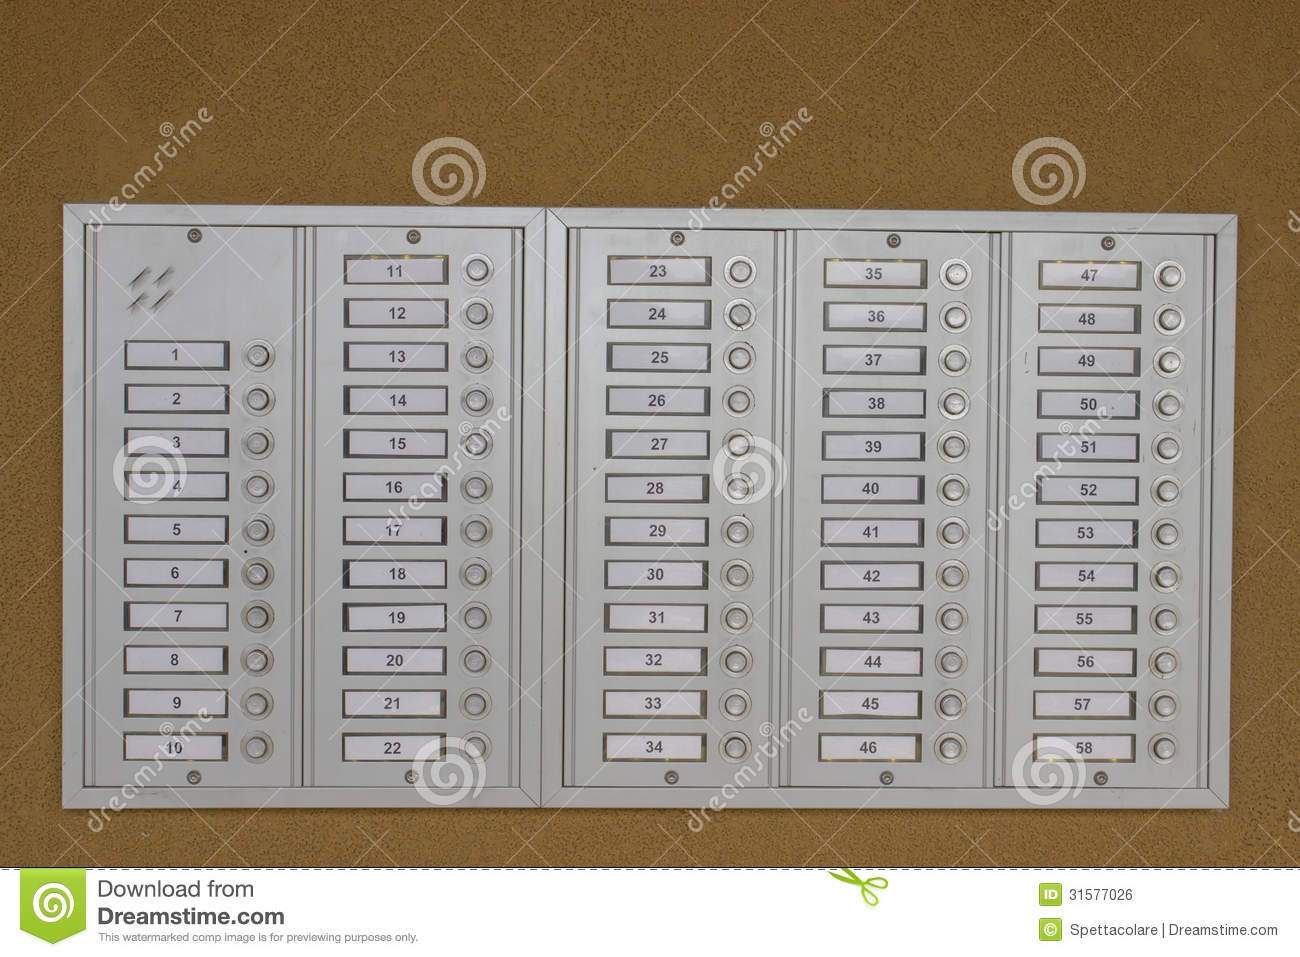 door bell buttons royalty free stock image image 31577026